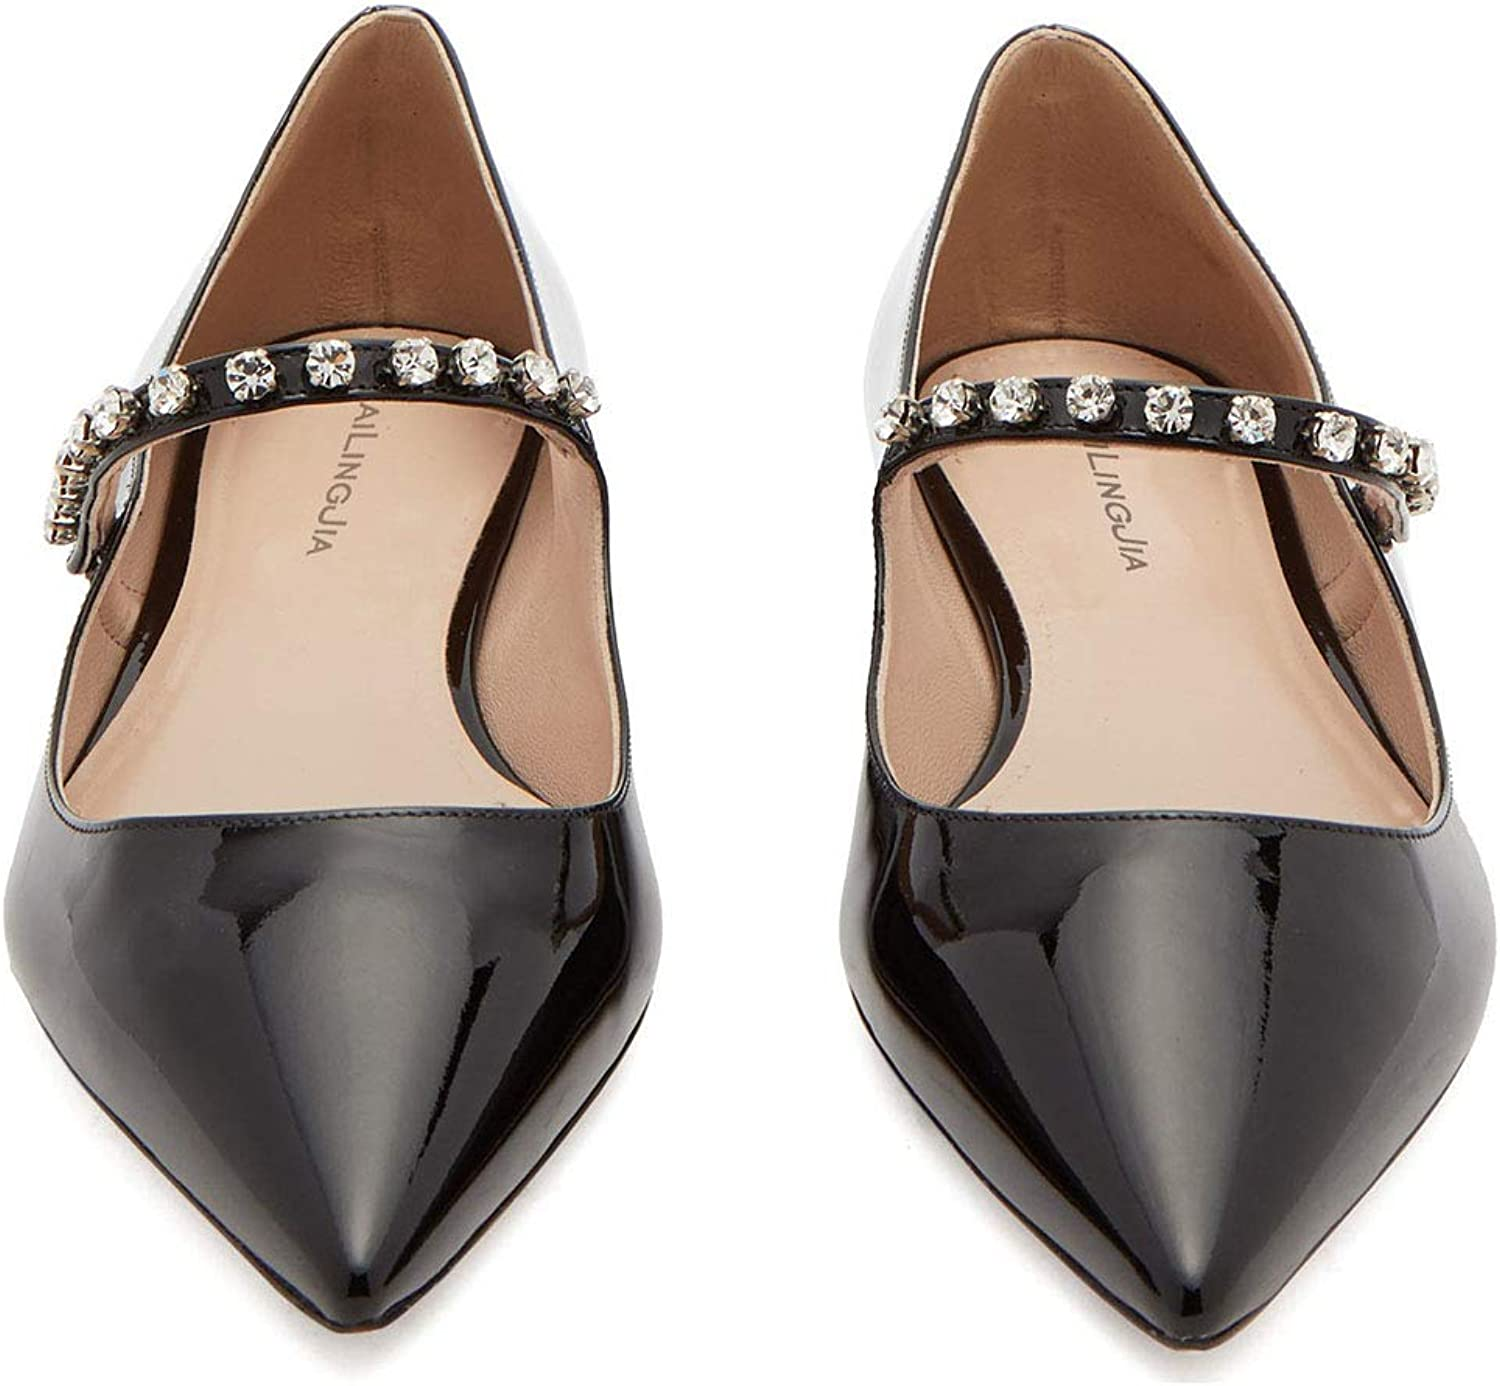 Sandals, Ladies Flats - Single shoes - Black - Patent Leather - Pointed - Shallow shoes - Diamond shoes